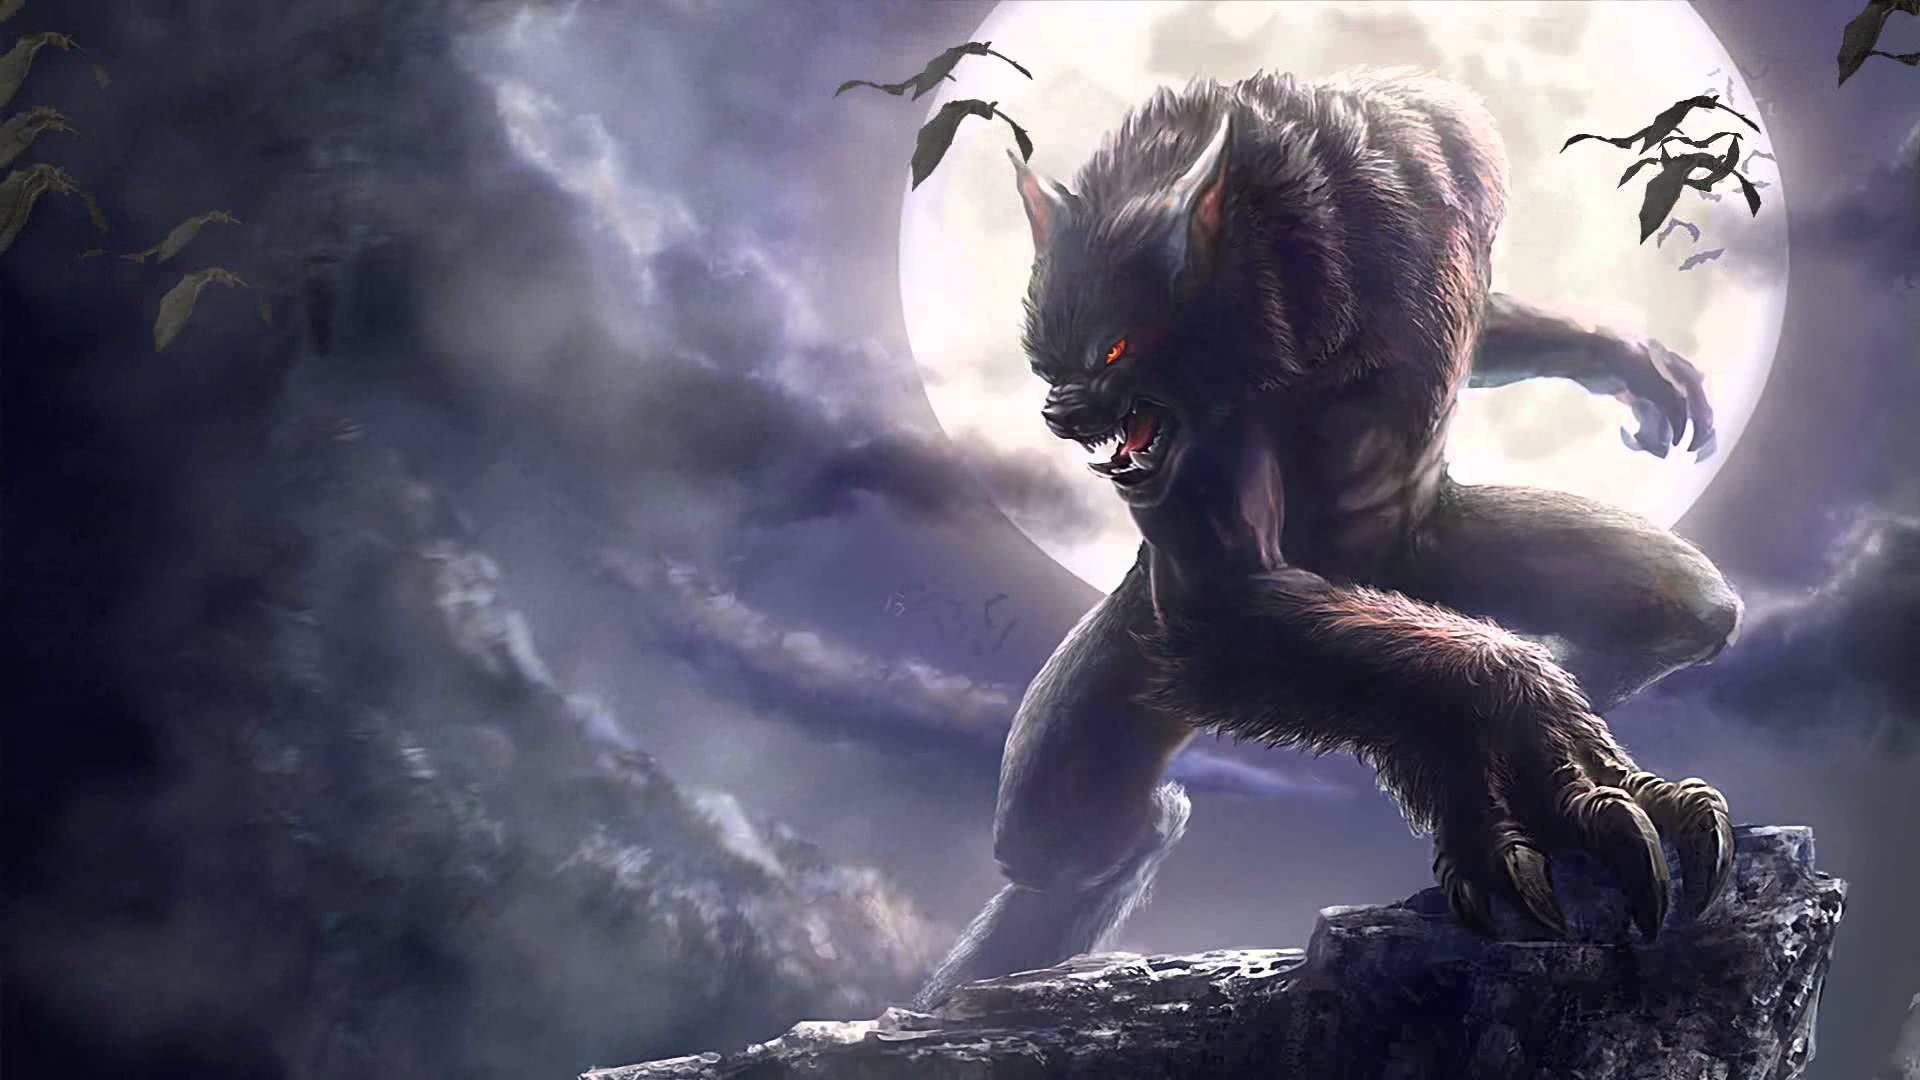 Werewolf Animated Wallpaper Desktopanimated